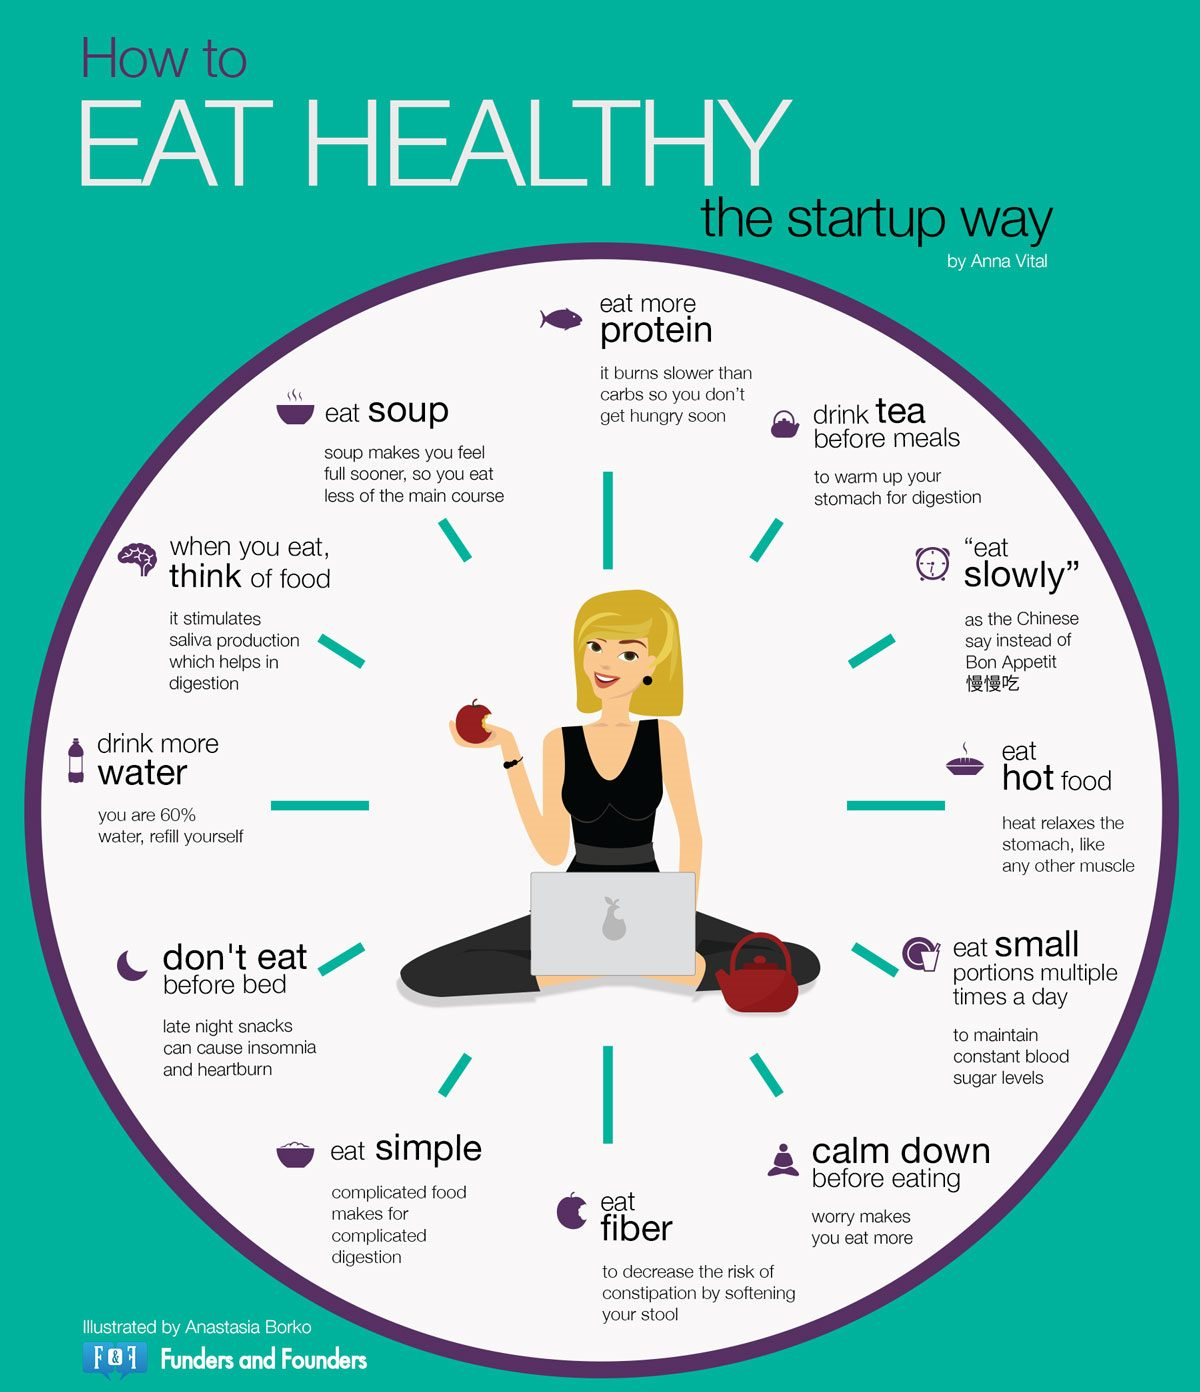 Eat healthy to help stay calm